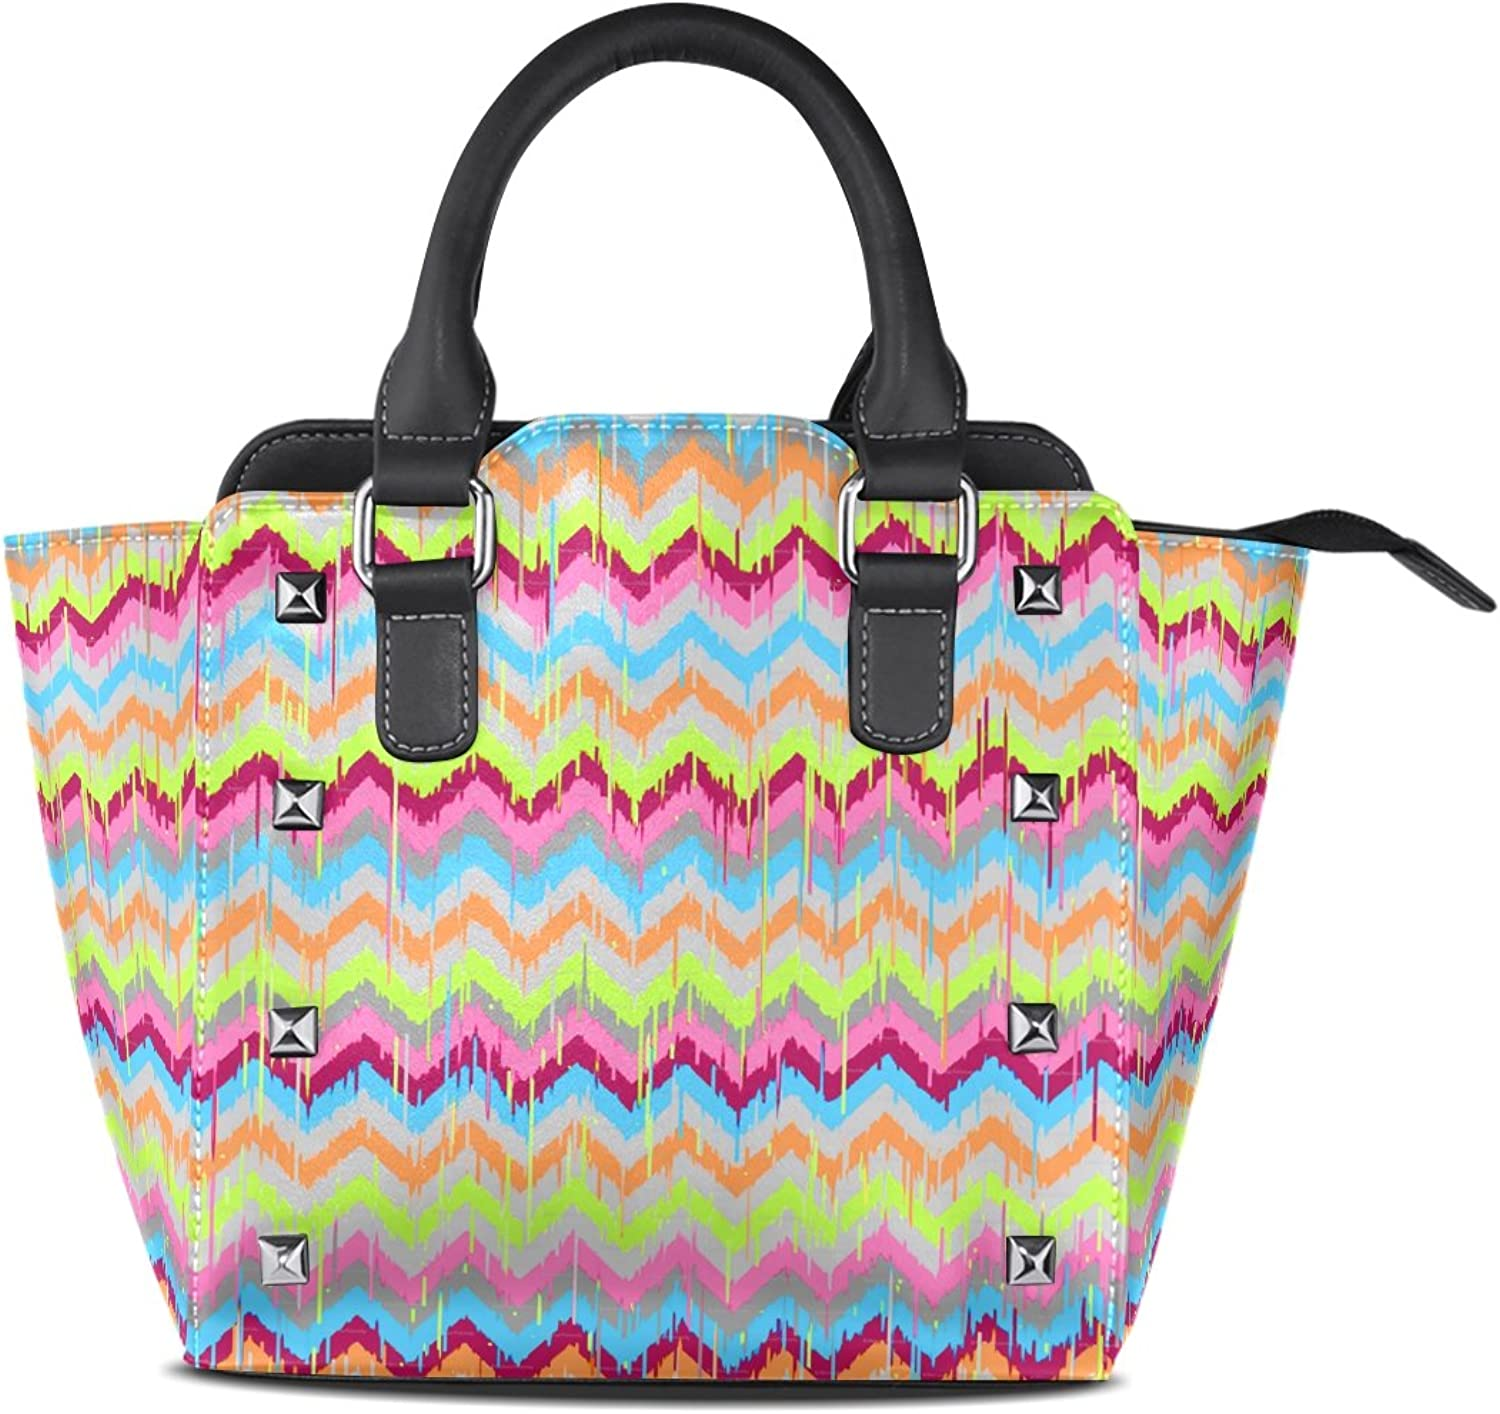 Sunlome colorful Chevron Ikat Print Women's Leather Tote Shoulder Bags Handbags